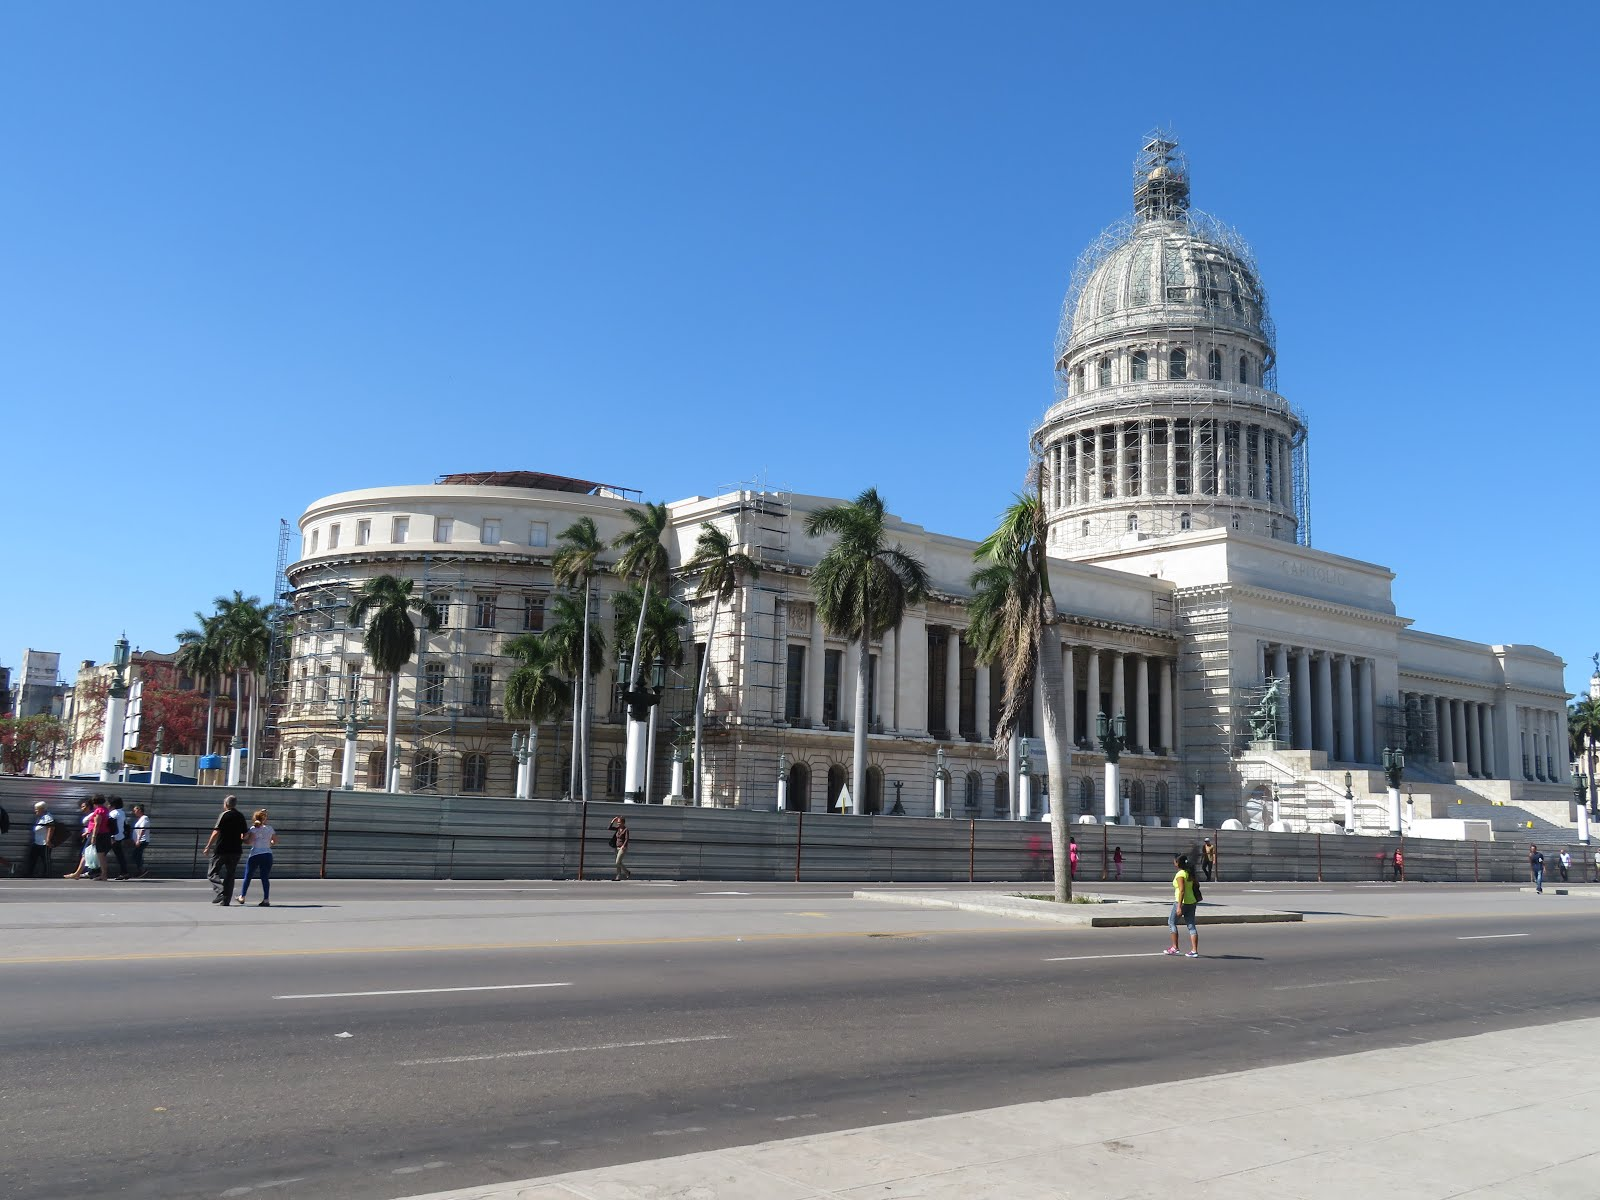 The Refurbished Capitol of Cuba, Havana